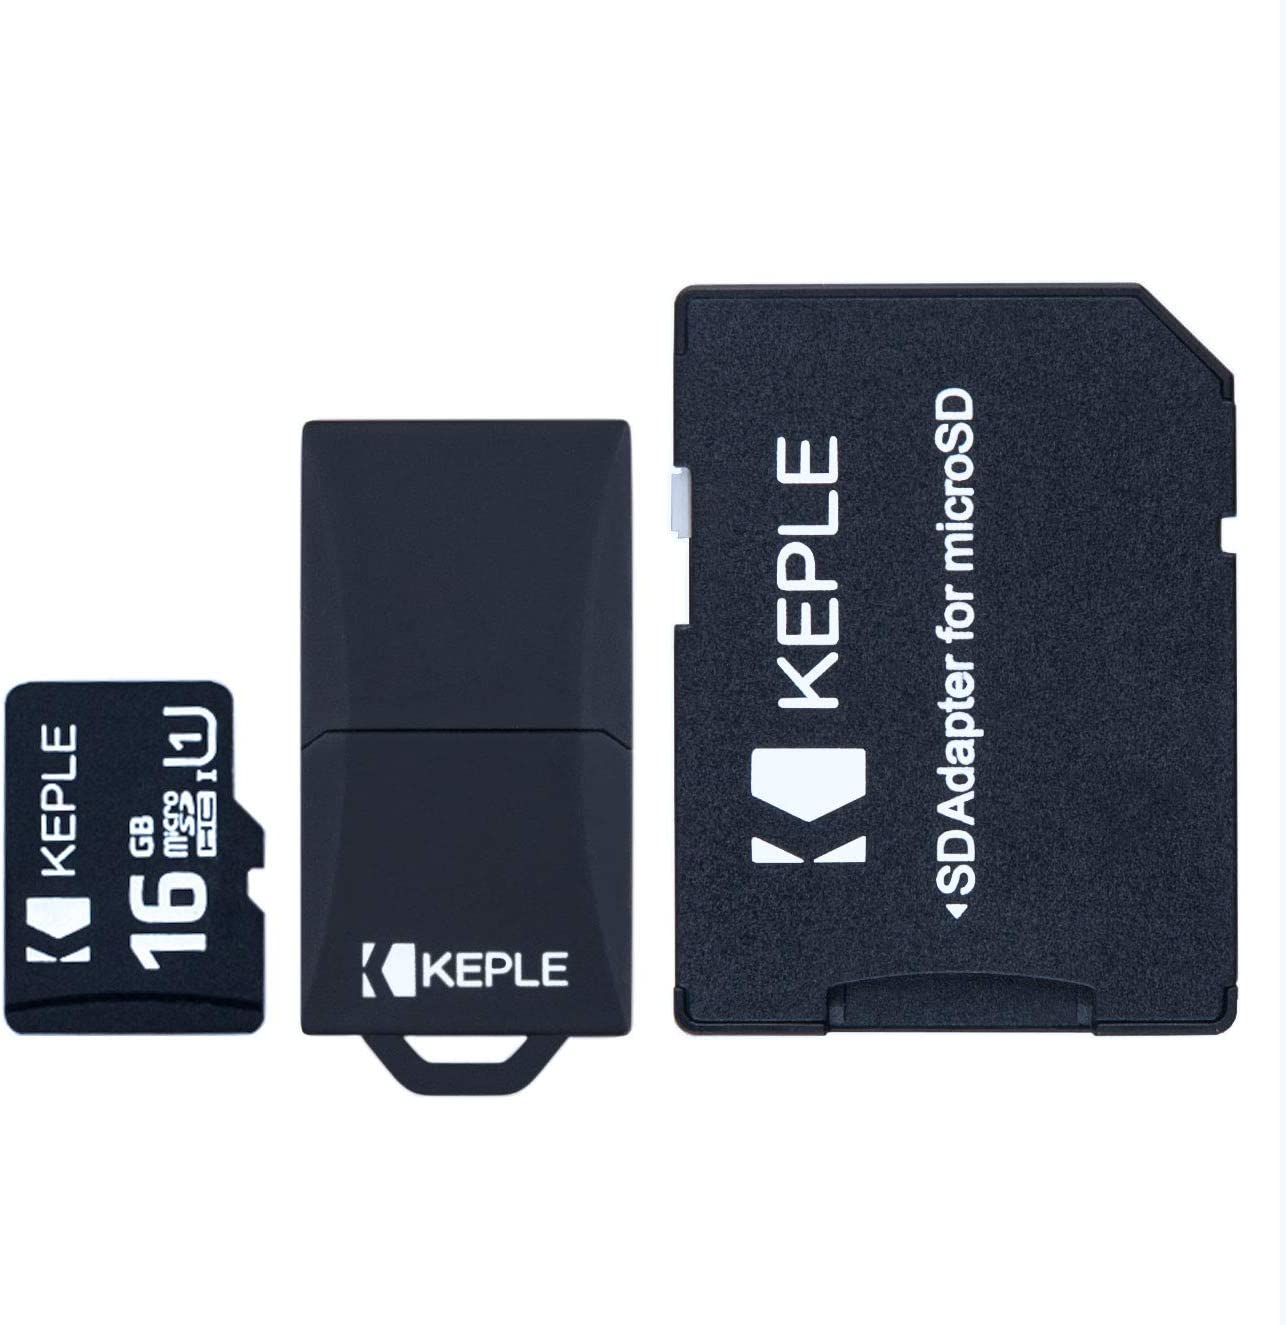 32GB microSD Memory Card Compatible with Samsung Galaxy s10 s10+ s9+ S9 S8 S7 S6 S5 S4 S3, J9 J8 J7 J6 J5 J3 J2 J1, A9 A8 A7 A6 A6+A5 A4 A3, Note 9 8 7 6 5 4 3 2, Grand, Pro, Edge | Micro SD 32 GB